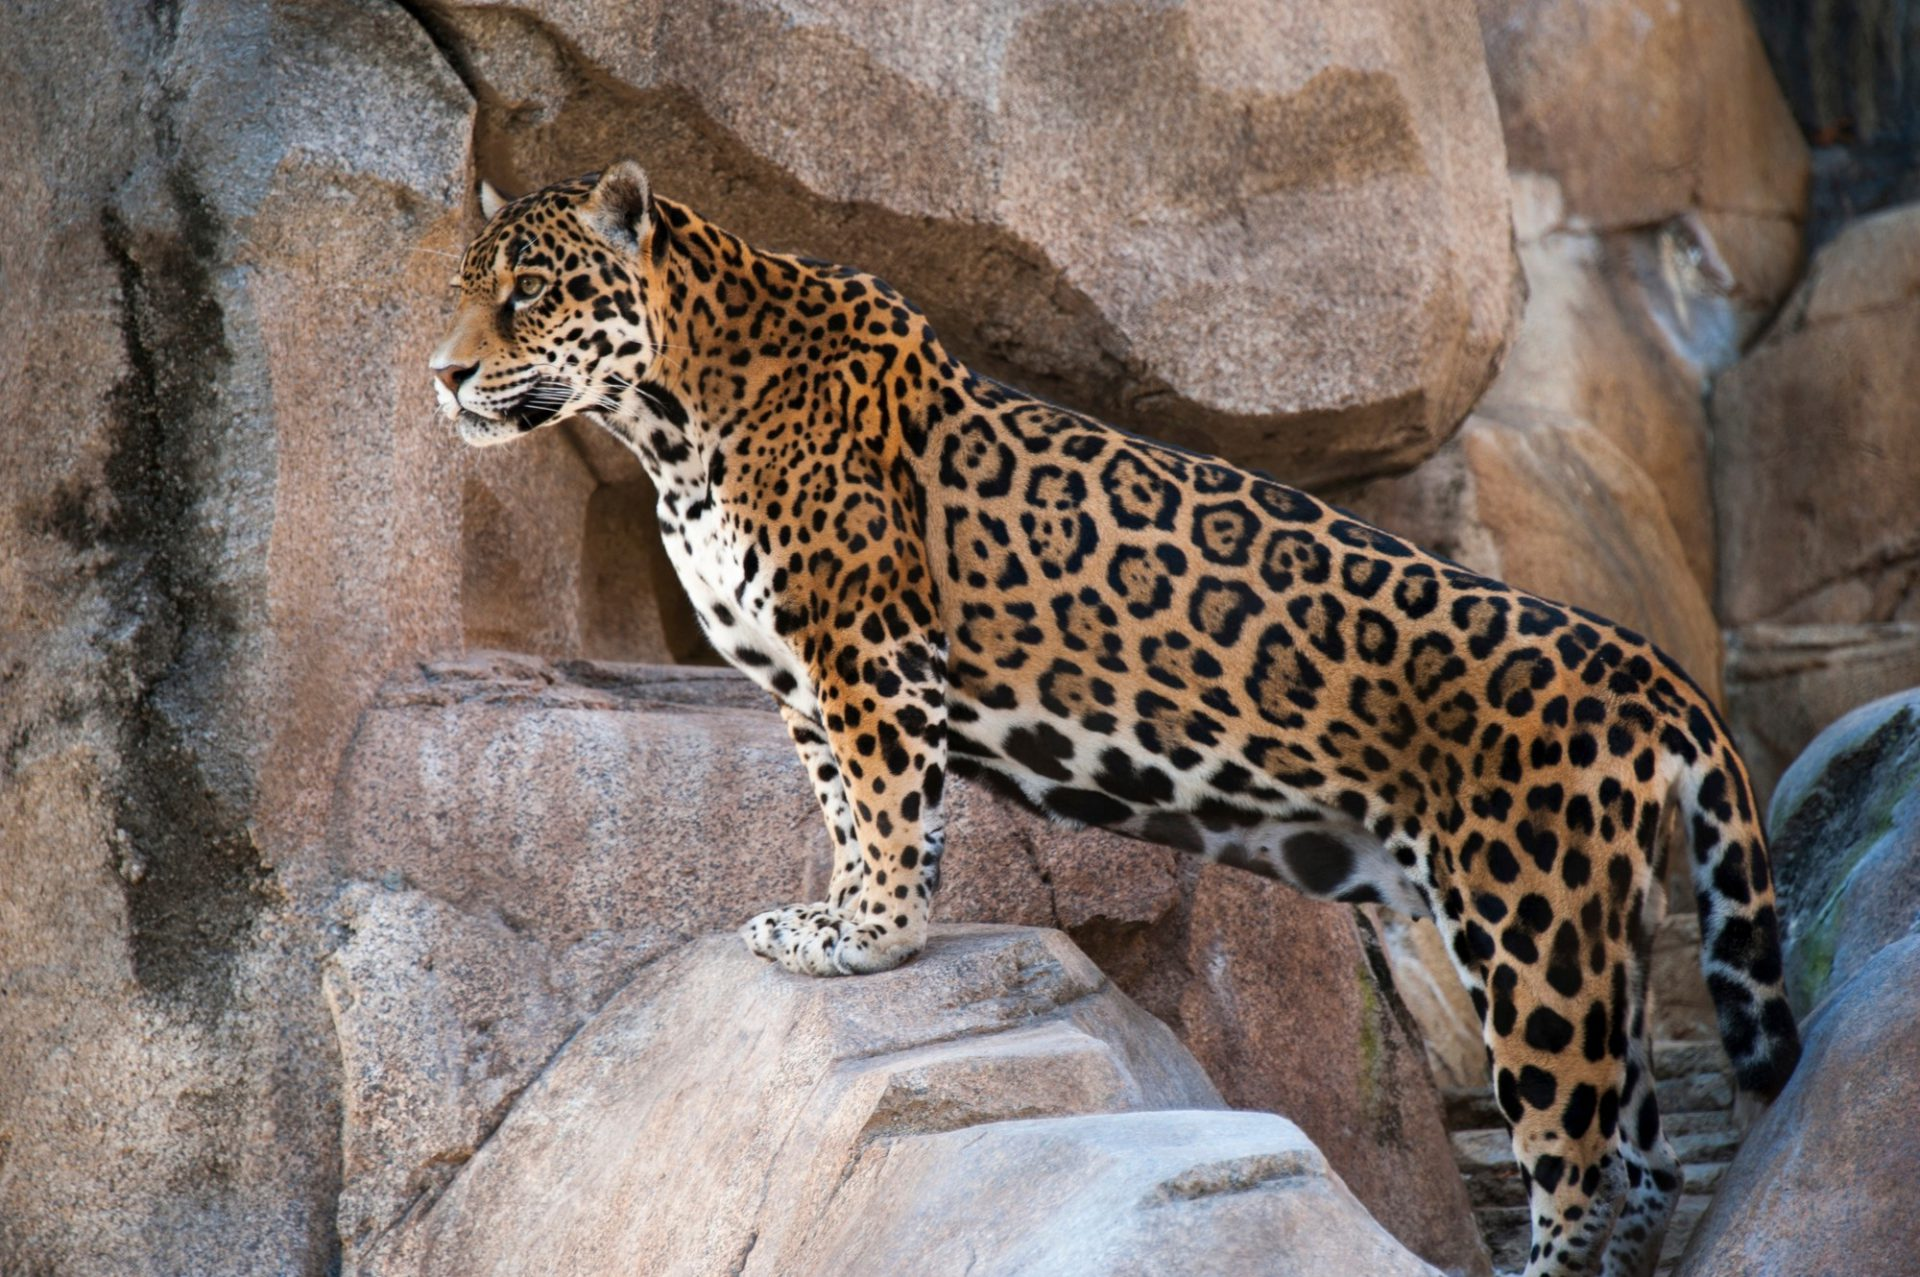 Photo: A jaguar (Panthera onca) at the Houston Zoo.